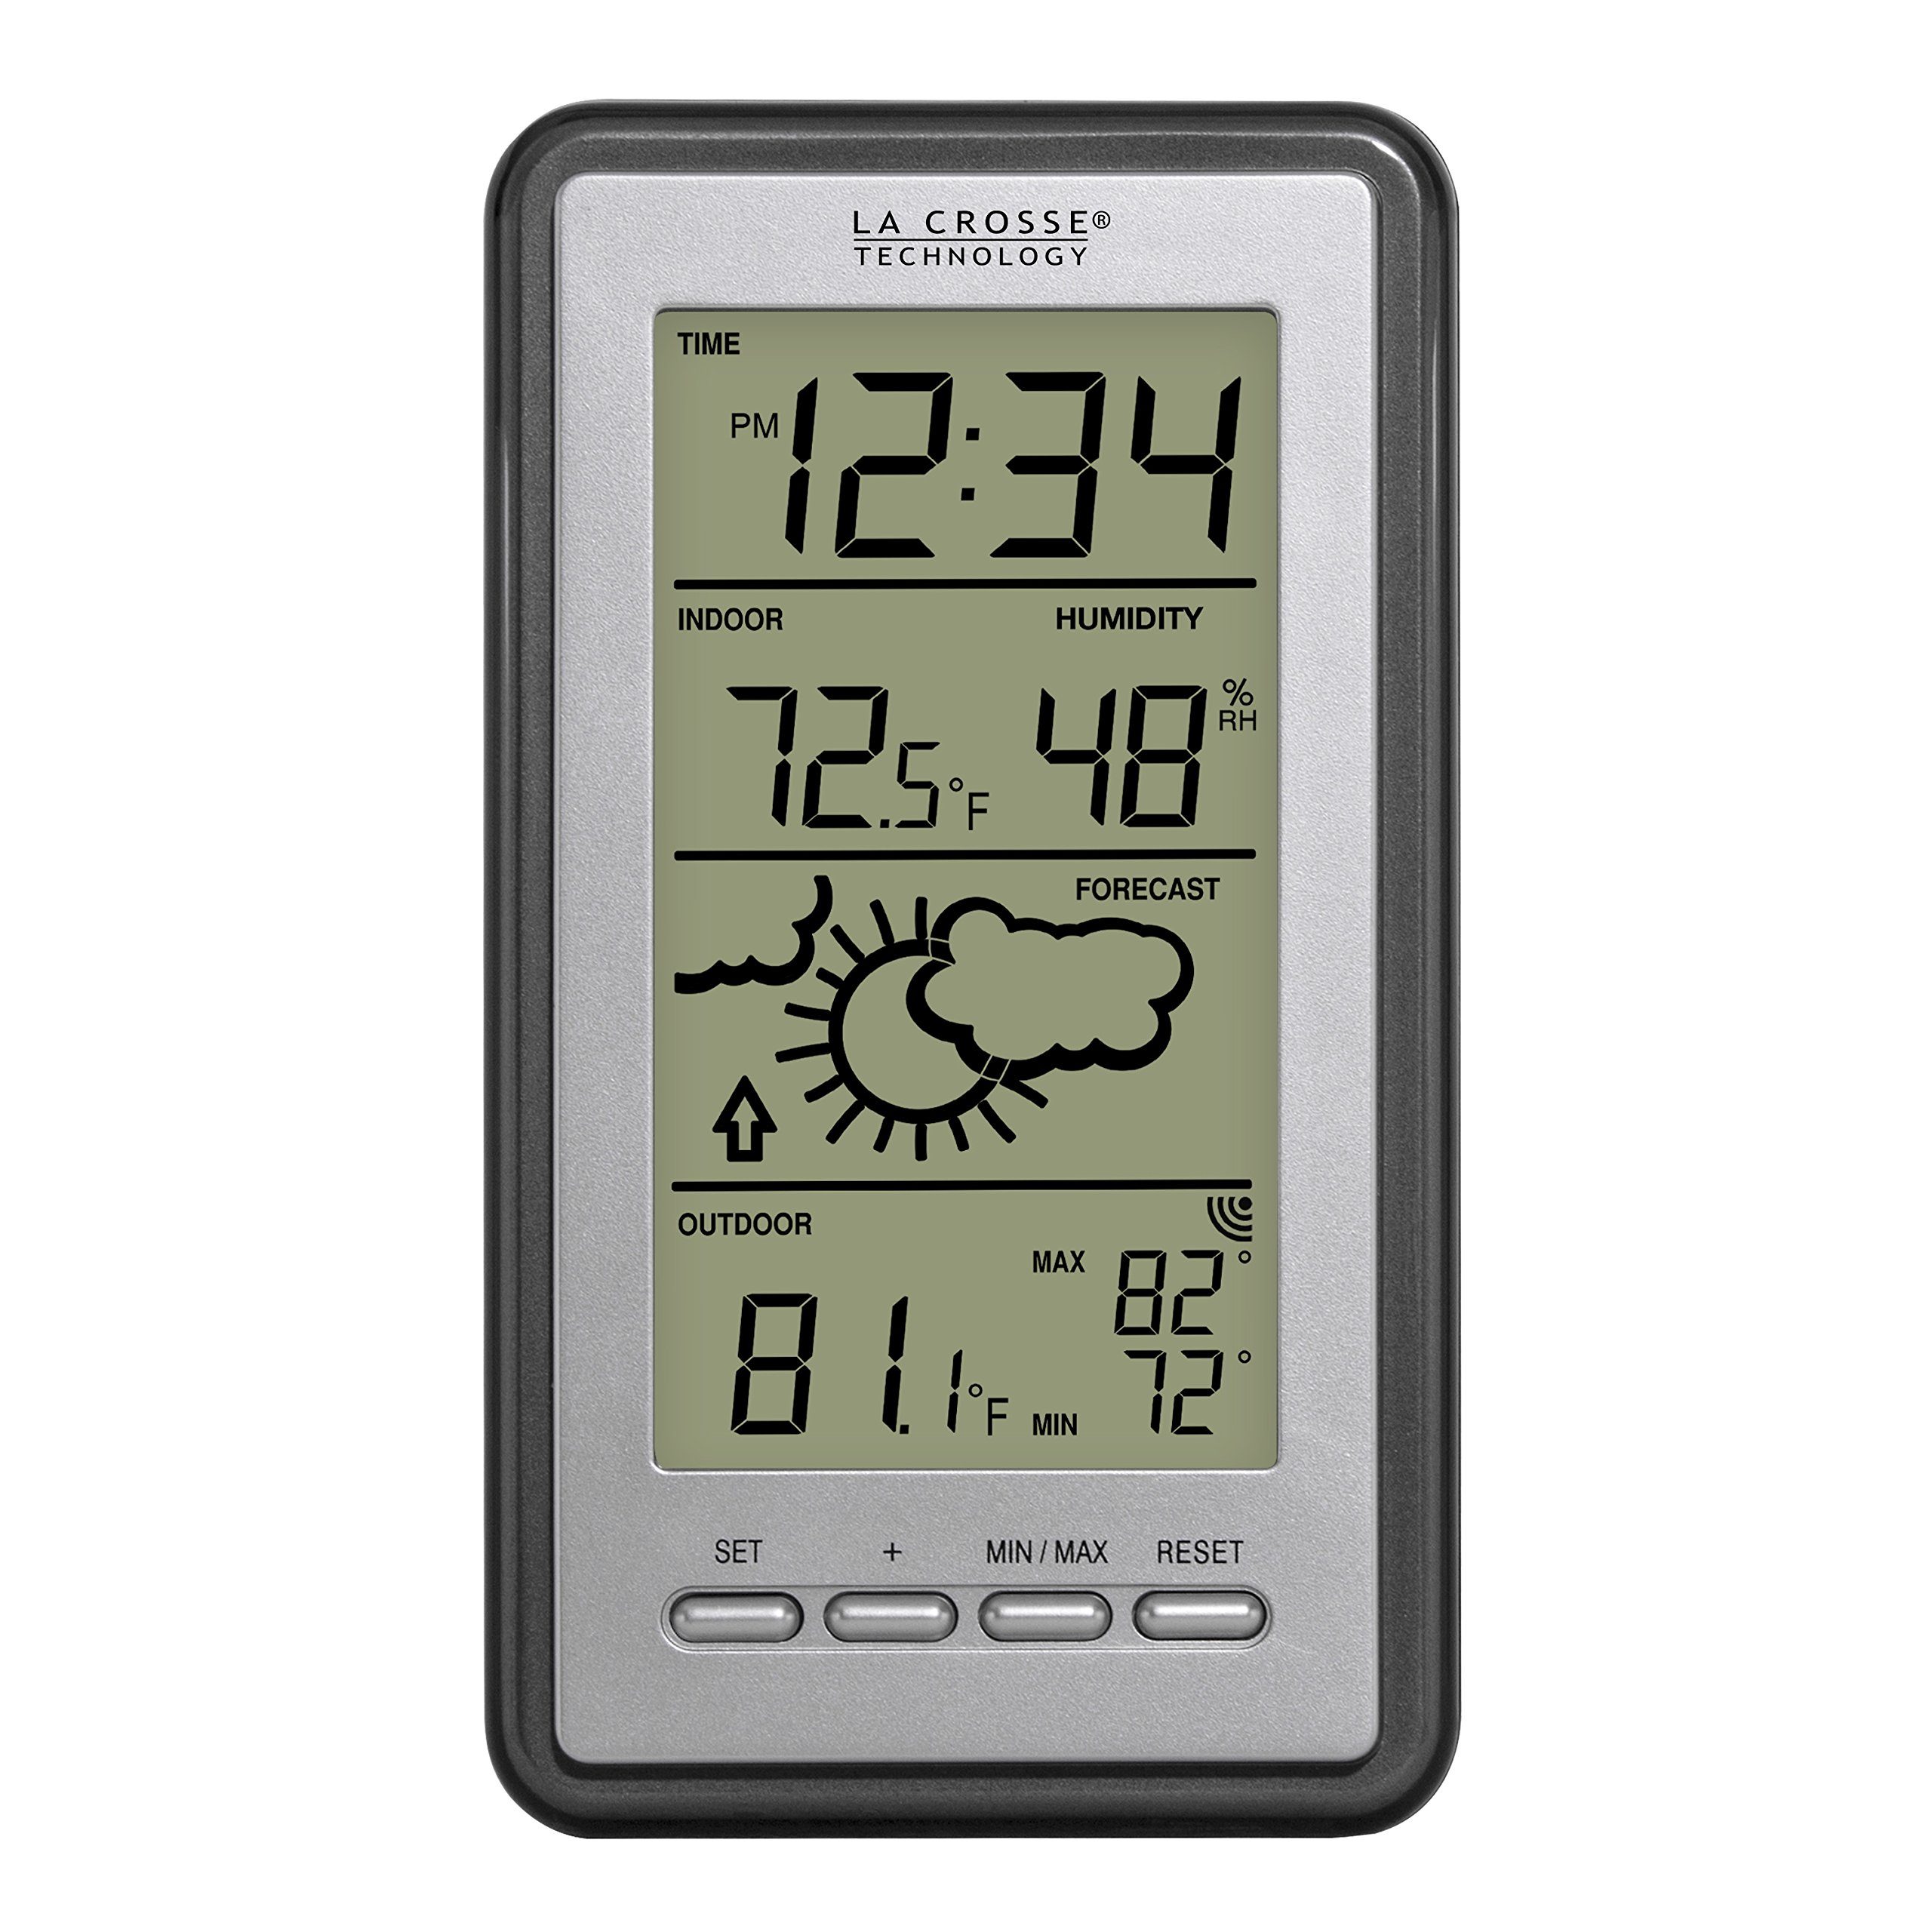 La Crosse Technology WS-9230U-IT-Int Digital Forecast Thermometer with Temp and Humidity